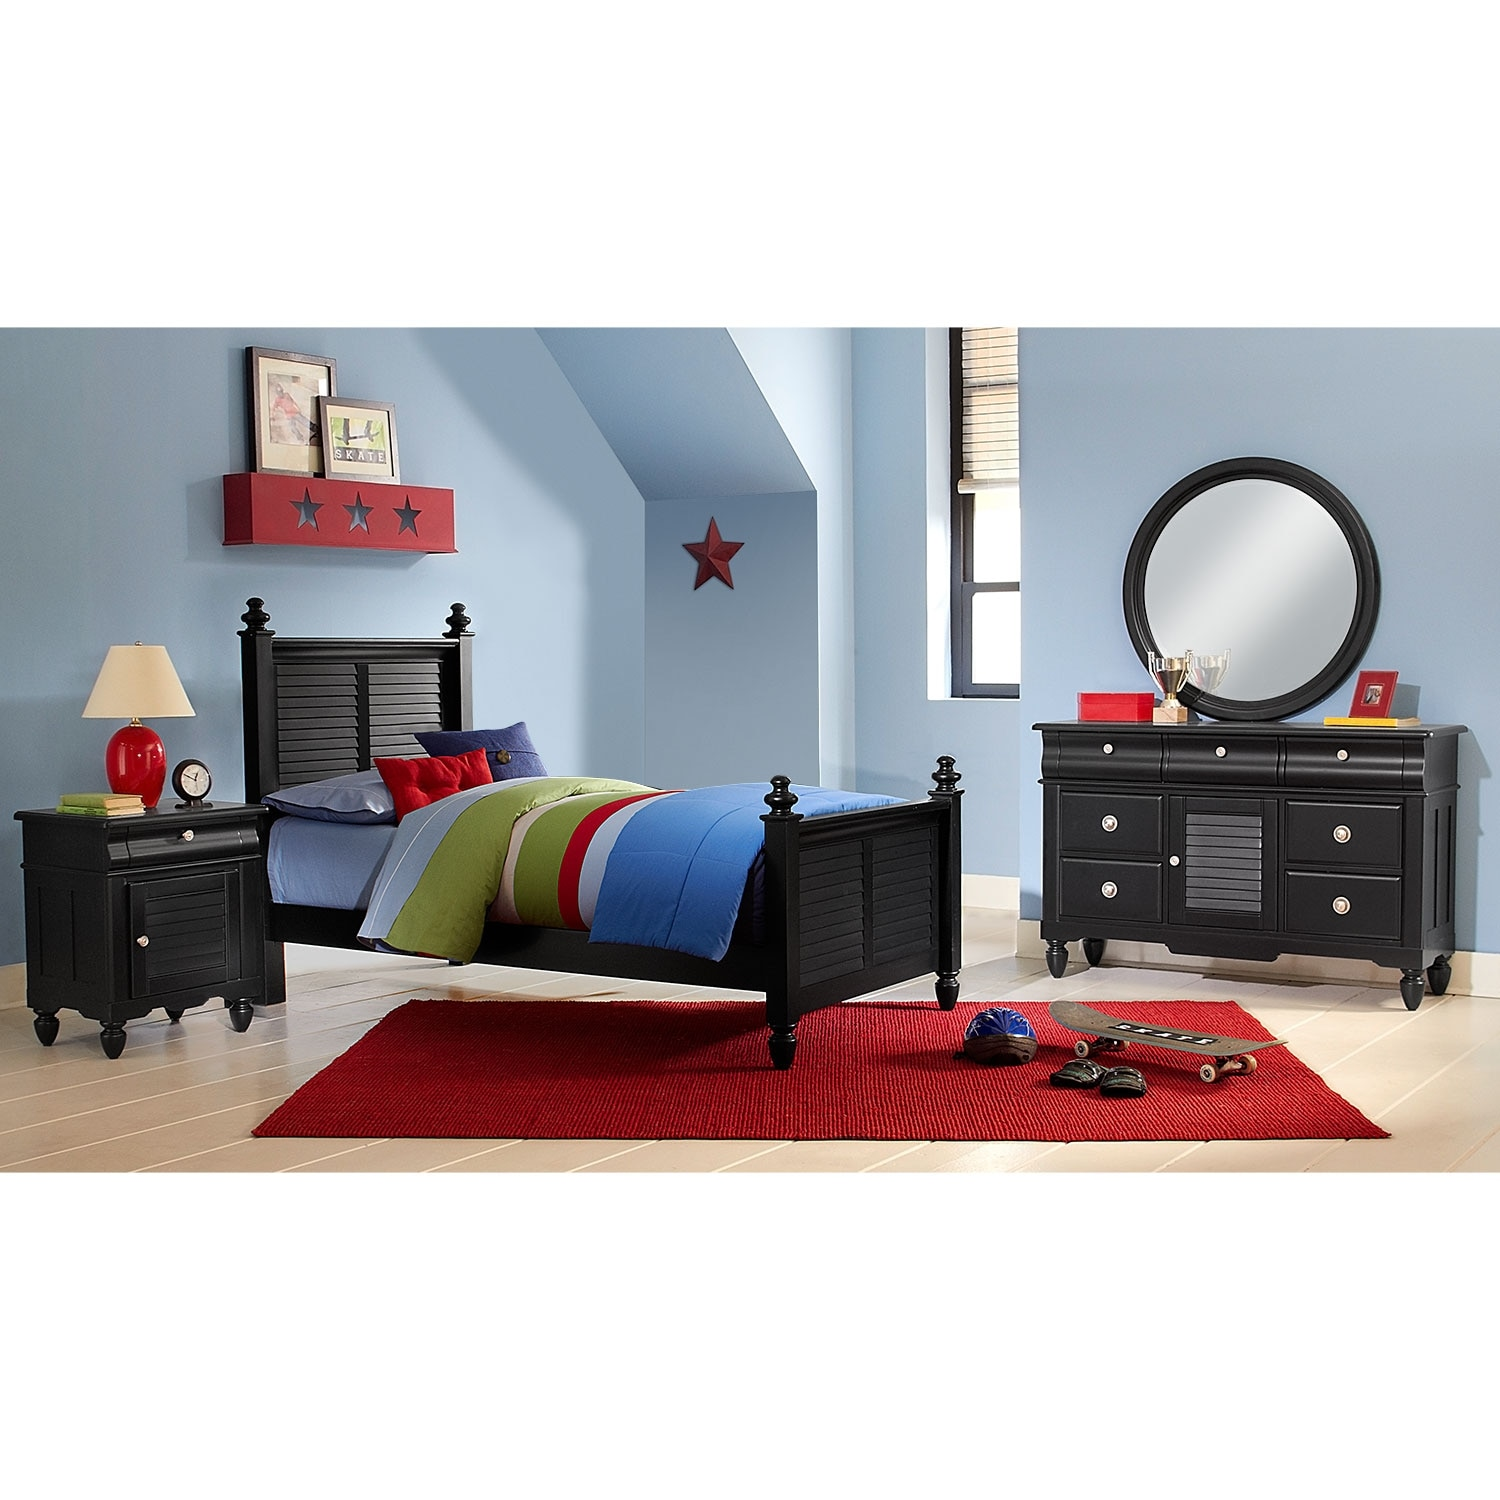 Kids Furniture - Seaside 6-Piece Full Bedroom Set - Black